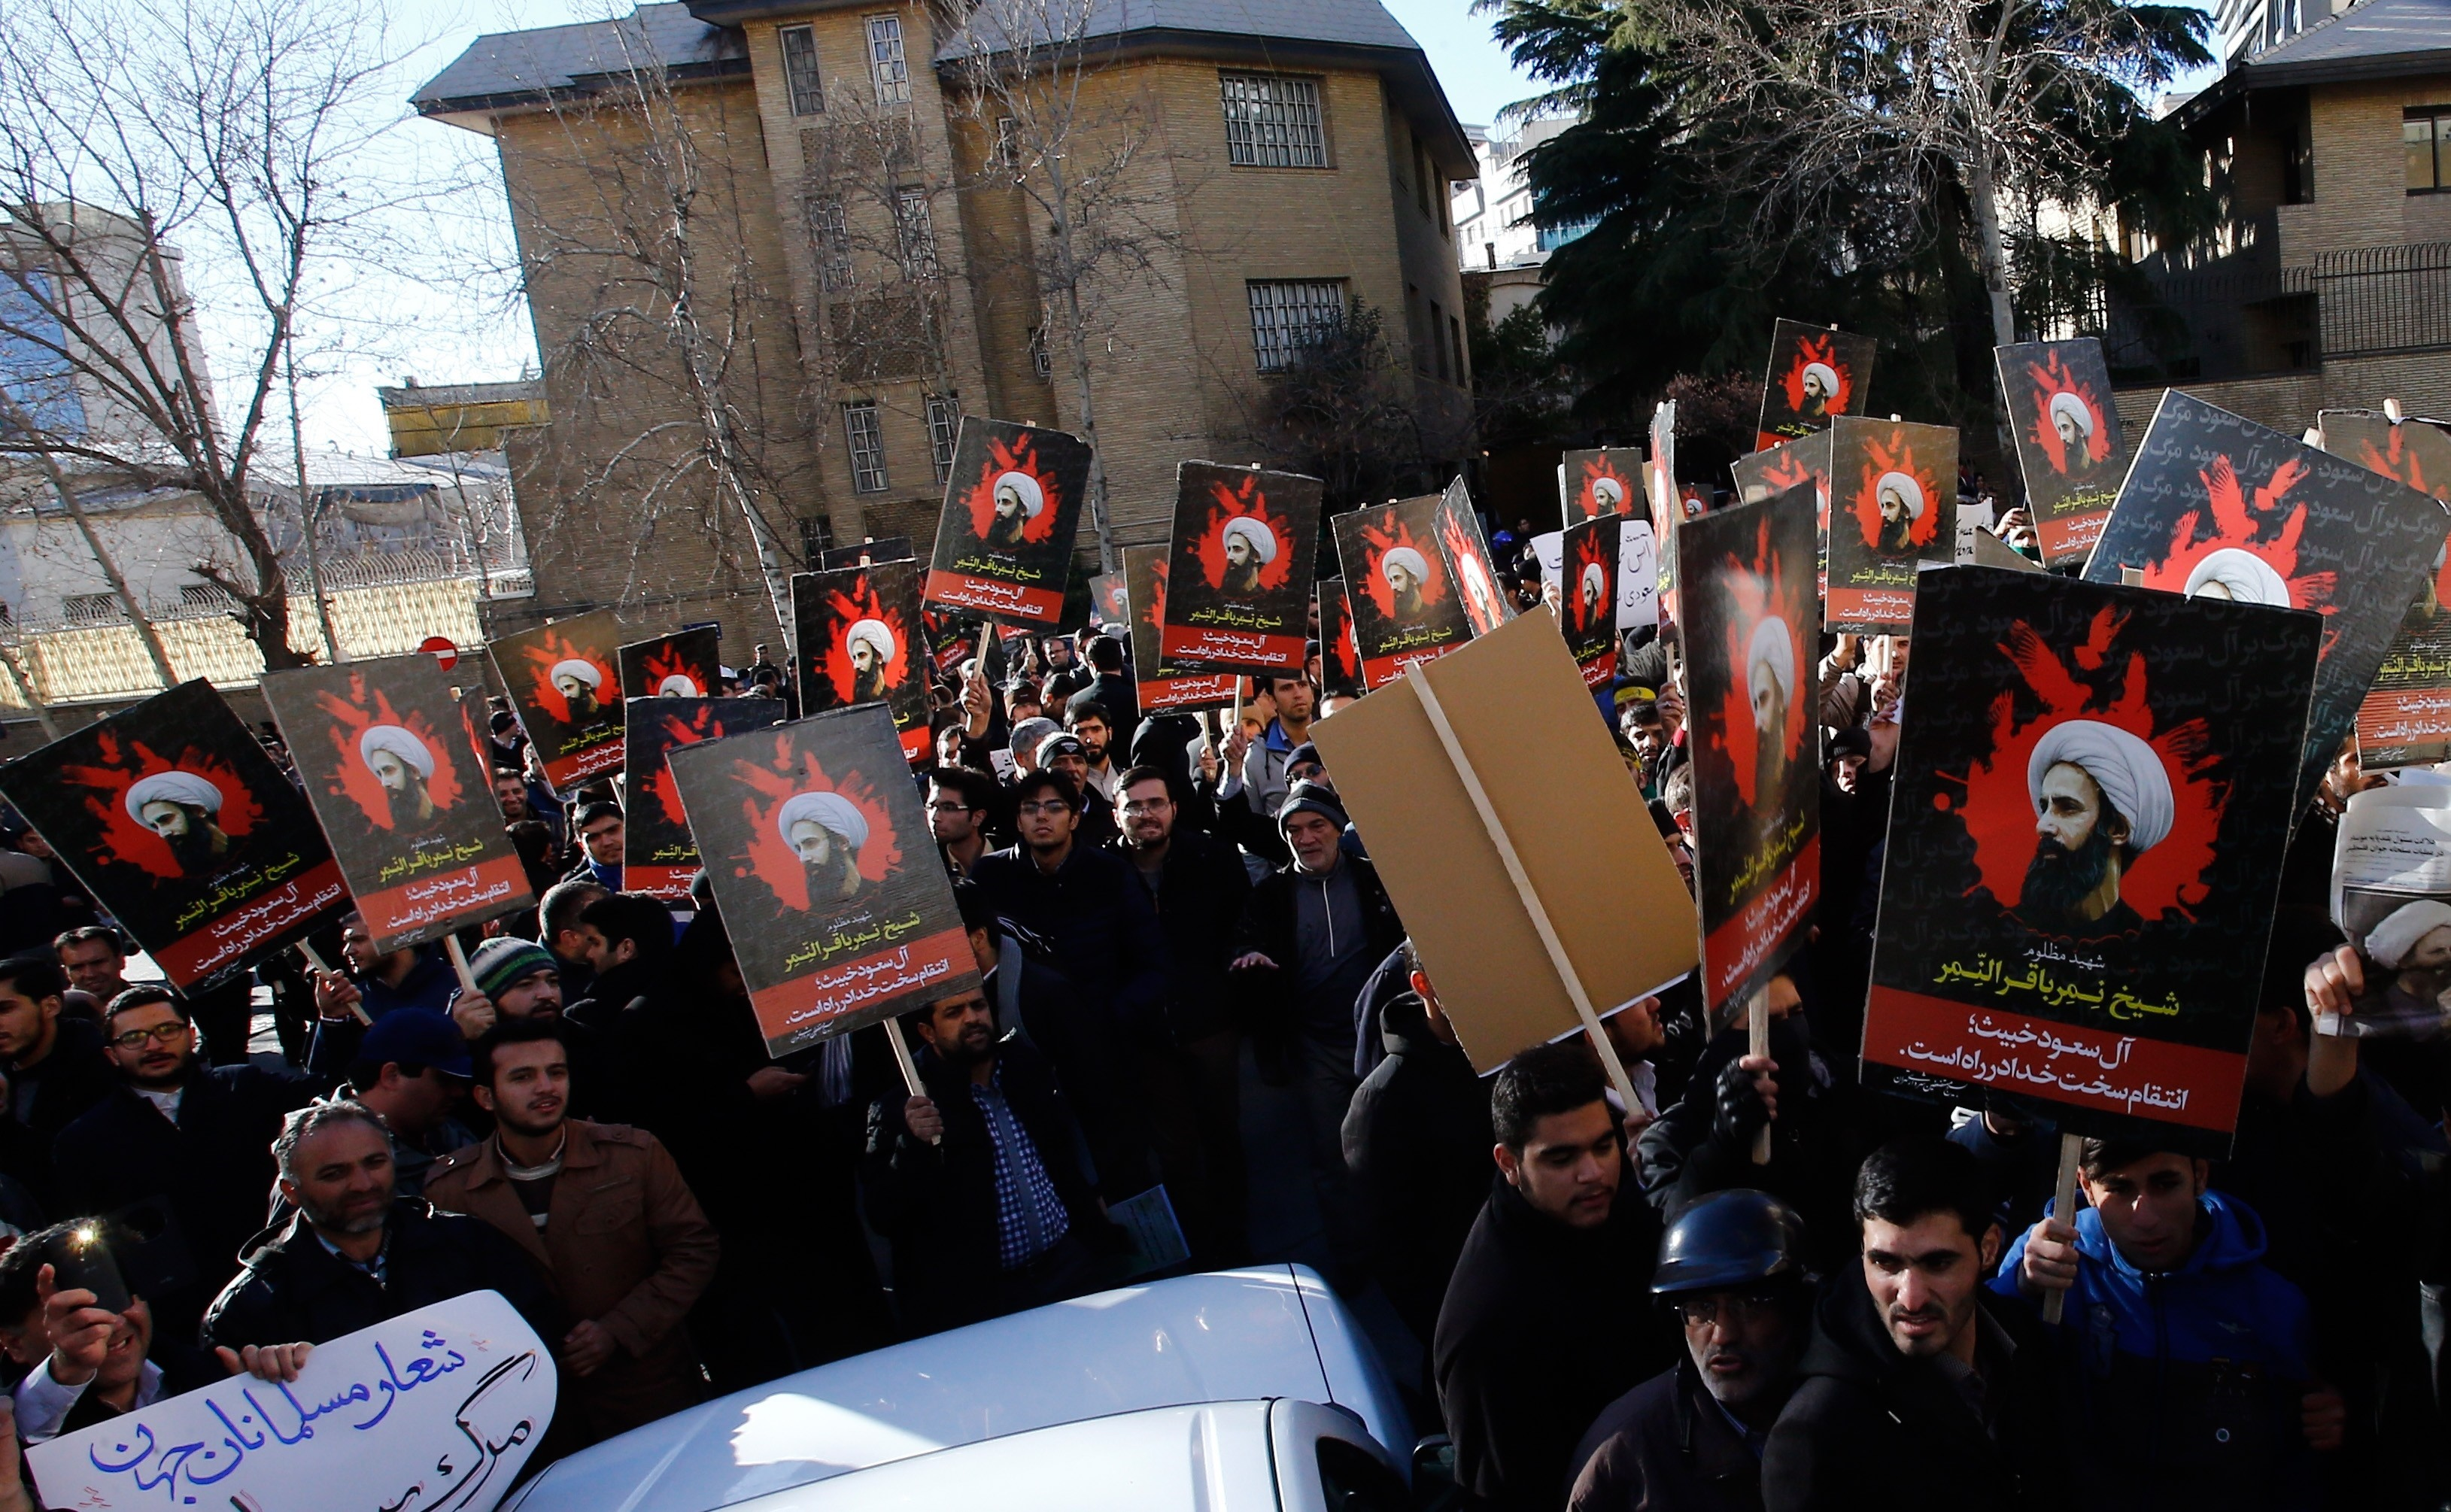 Demonstrators hold posters of Nimr Baqir al-Nimr and shout slogans during a protest rally outside the embassy of Saudi Arabia against the execution of prominent Saudi Shia cleric Nimr Baqir al-Nimr by Saudi authorities, in Tehran, Iran on Jan. 3 2016.